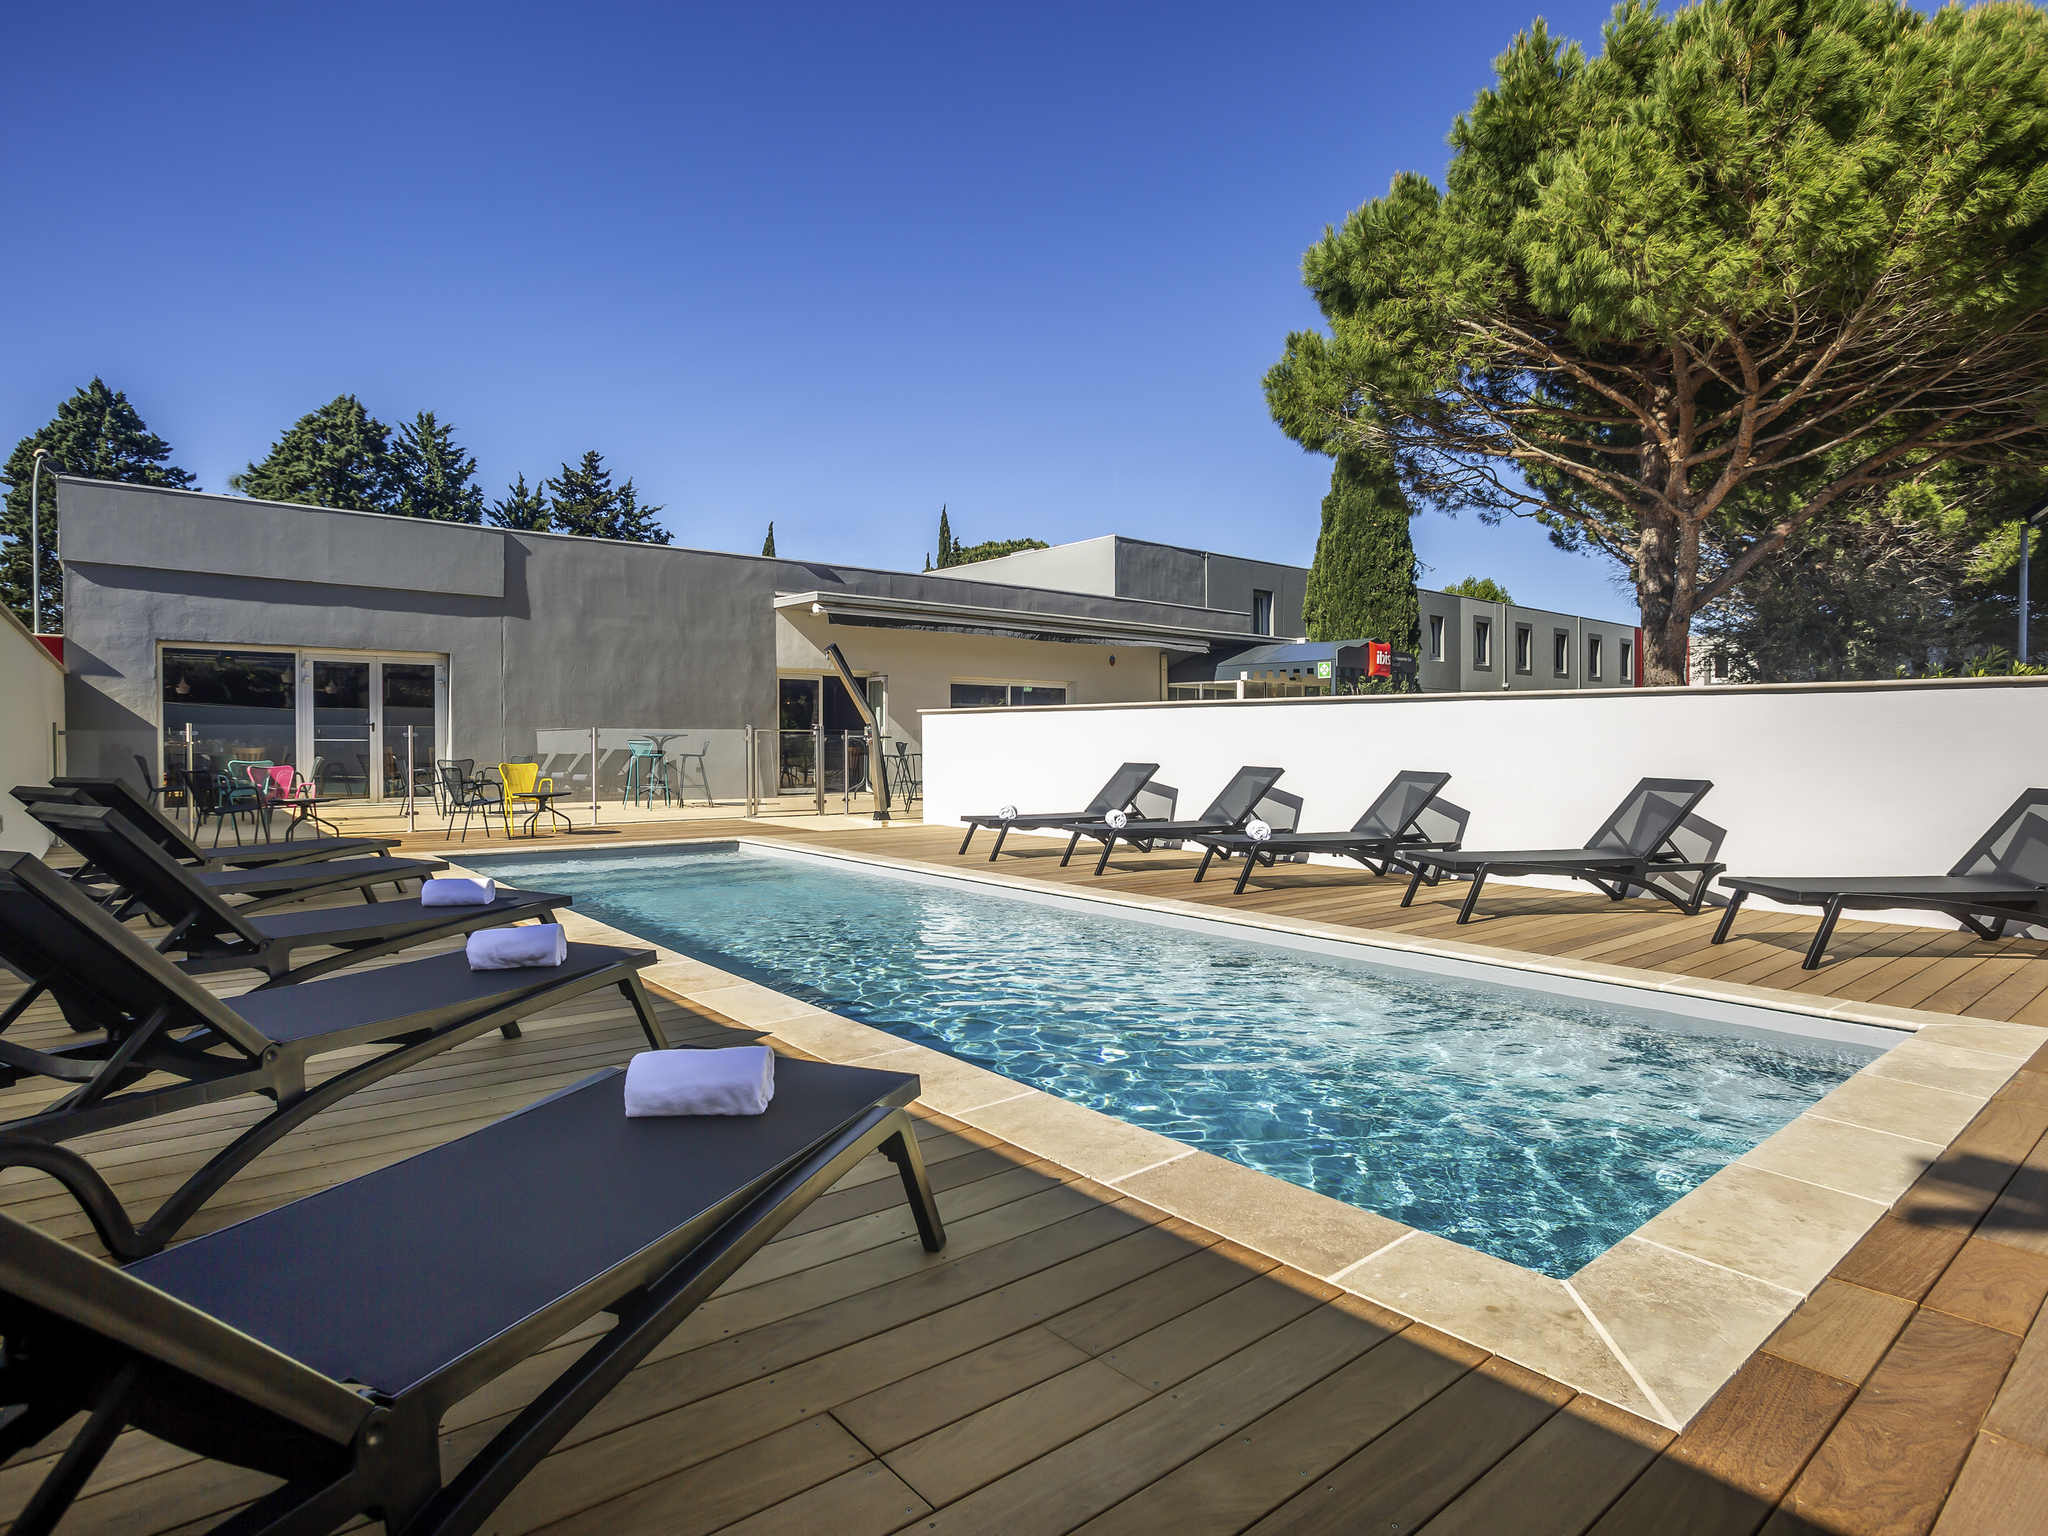 H tel carcassonne ibis carcassonne est la cite for Hotels carcassonne